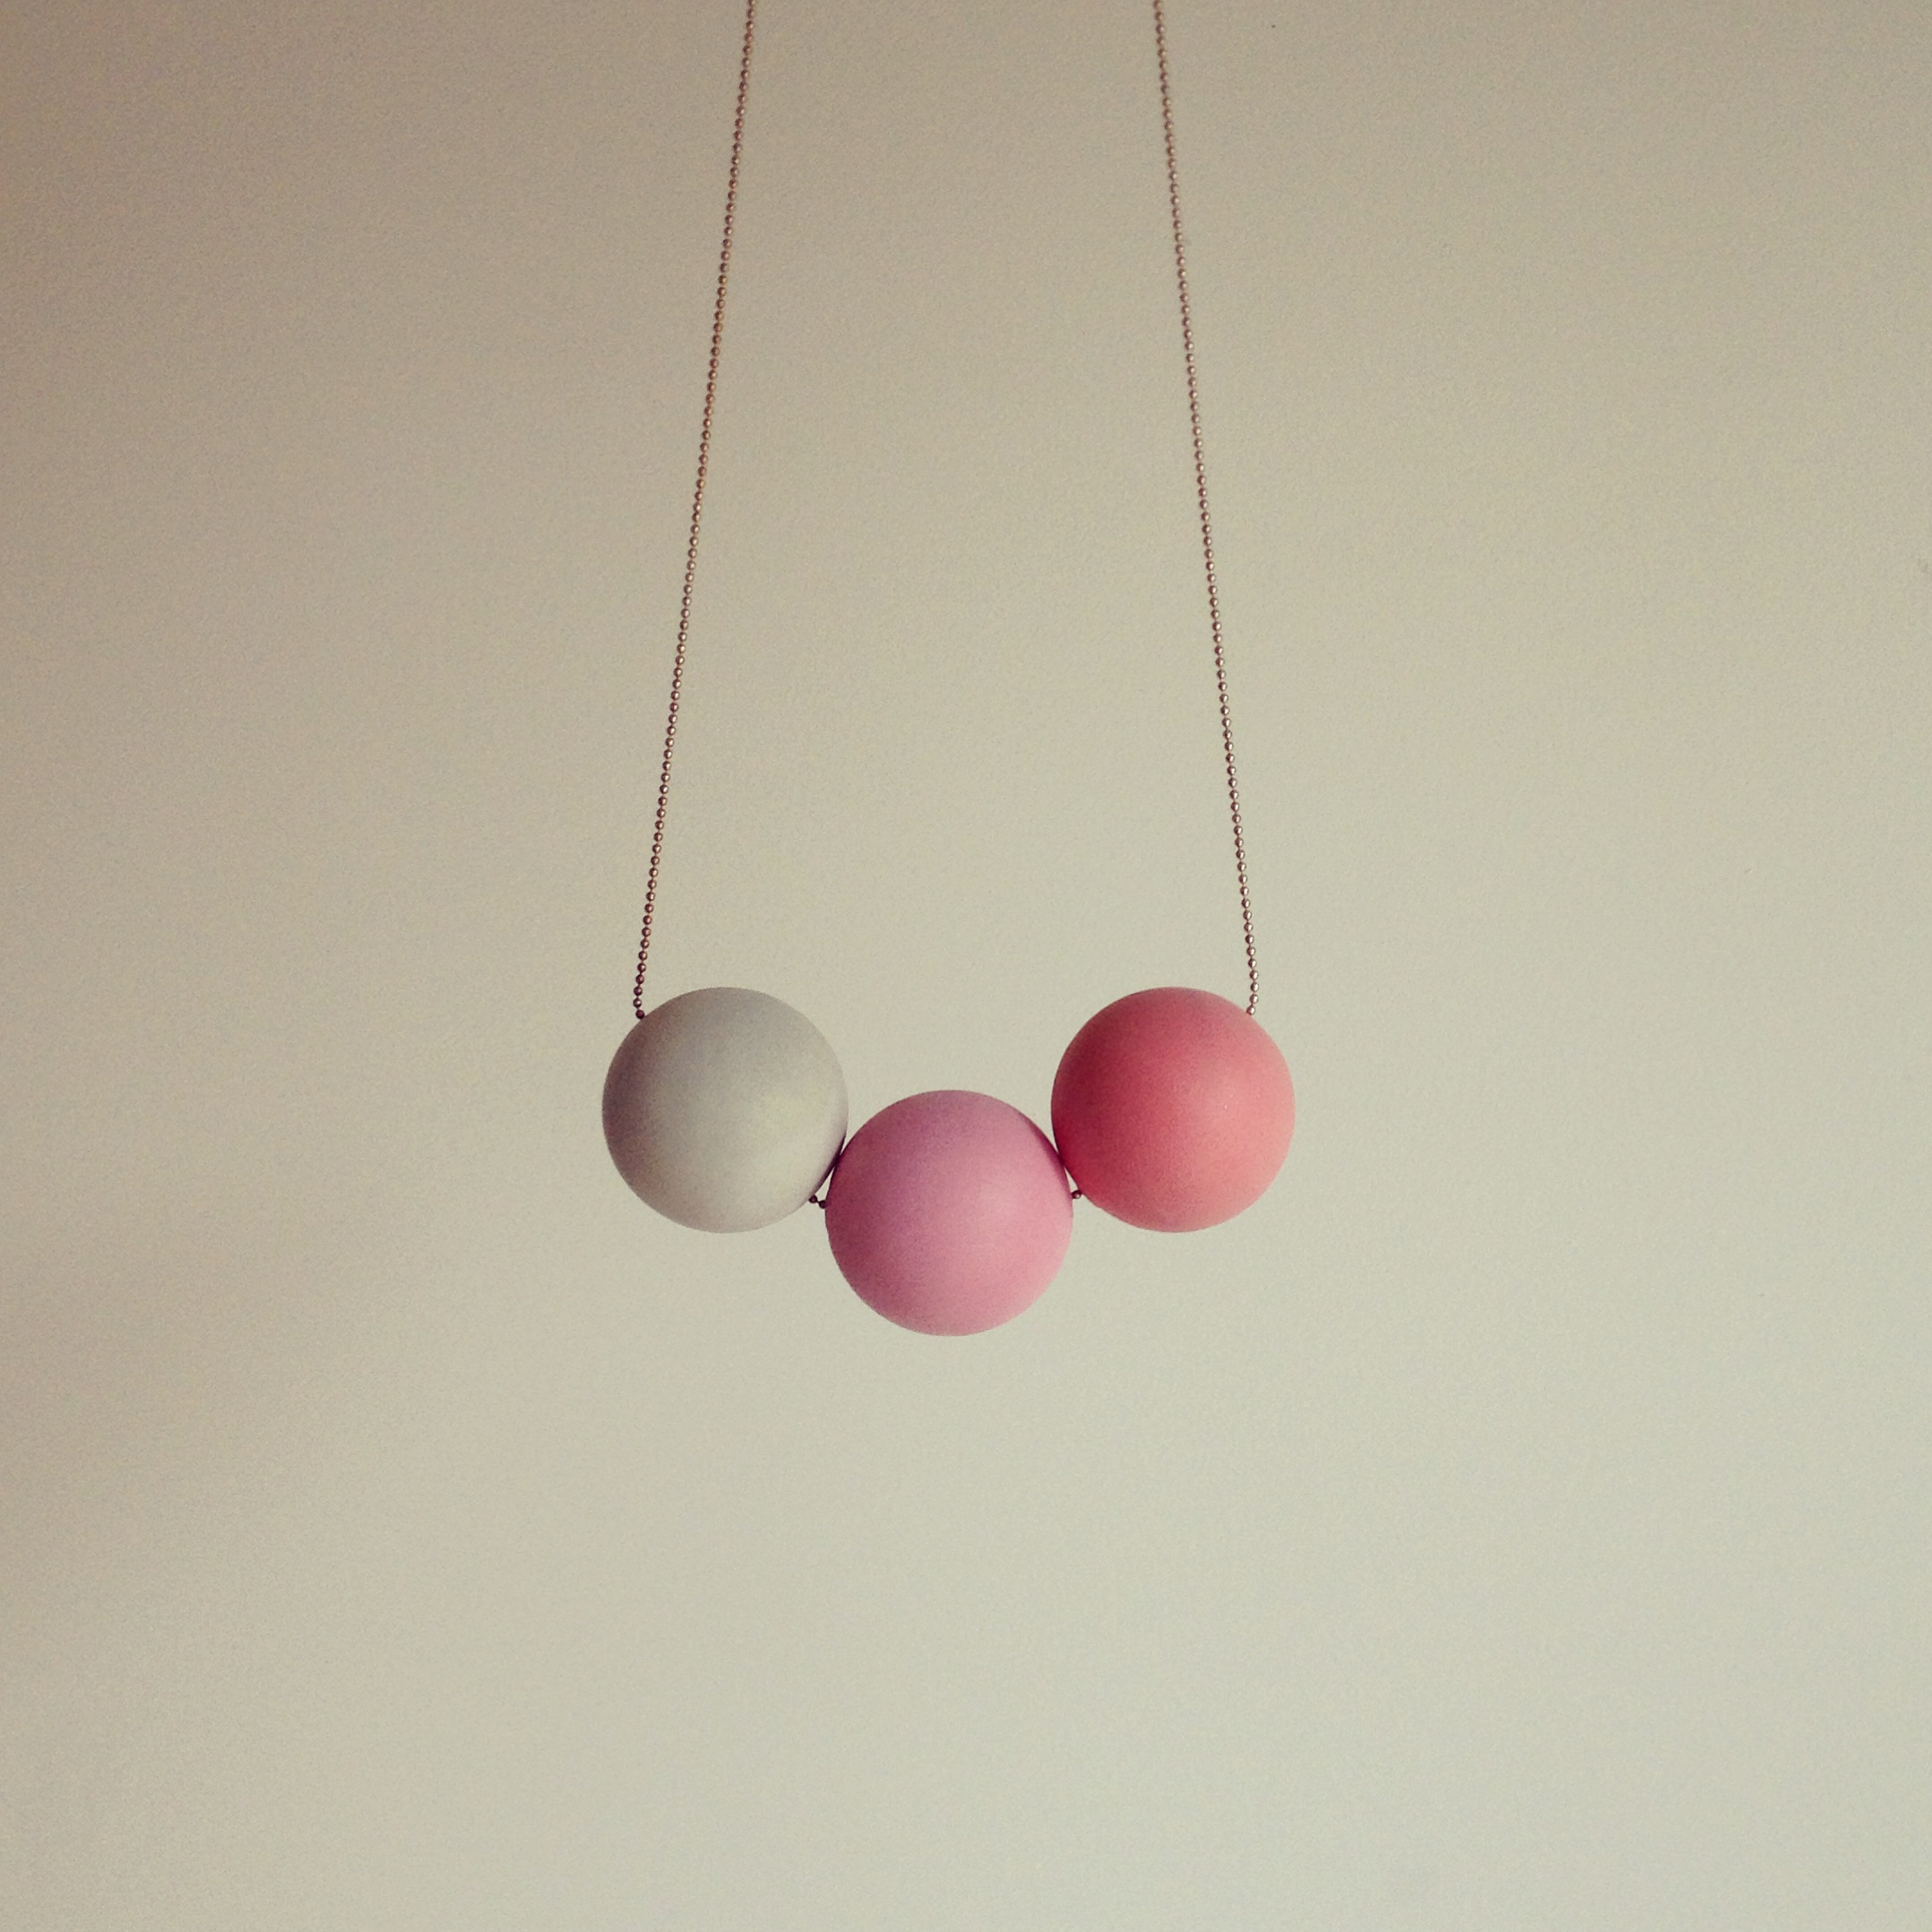 Le collier ping-pong